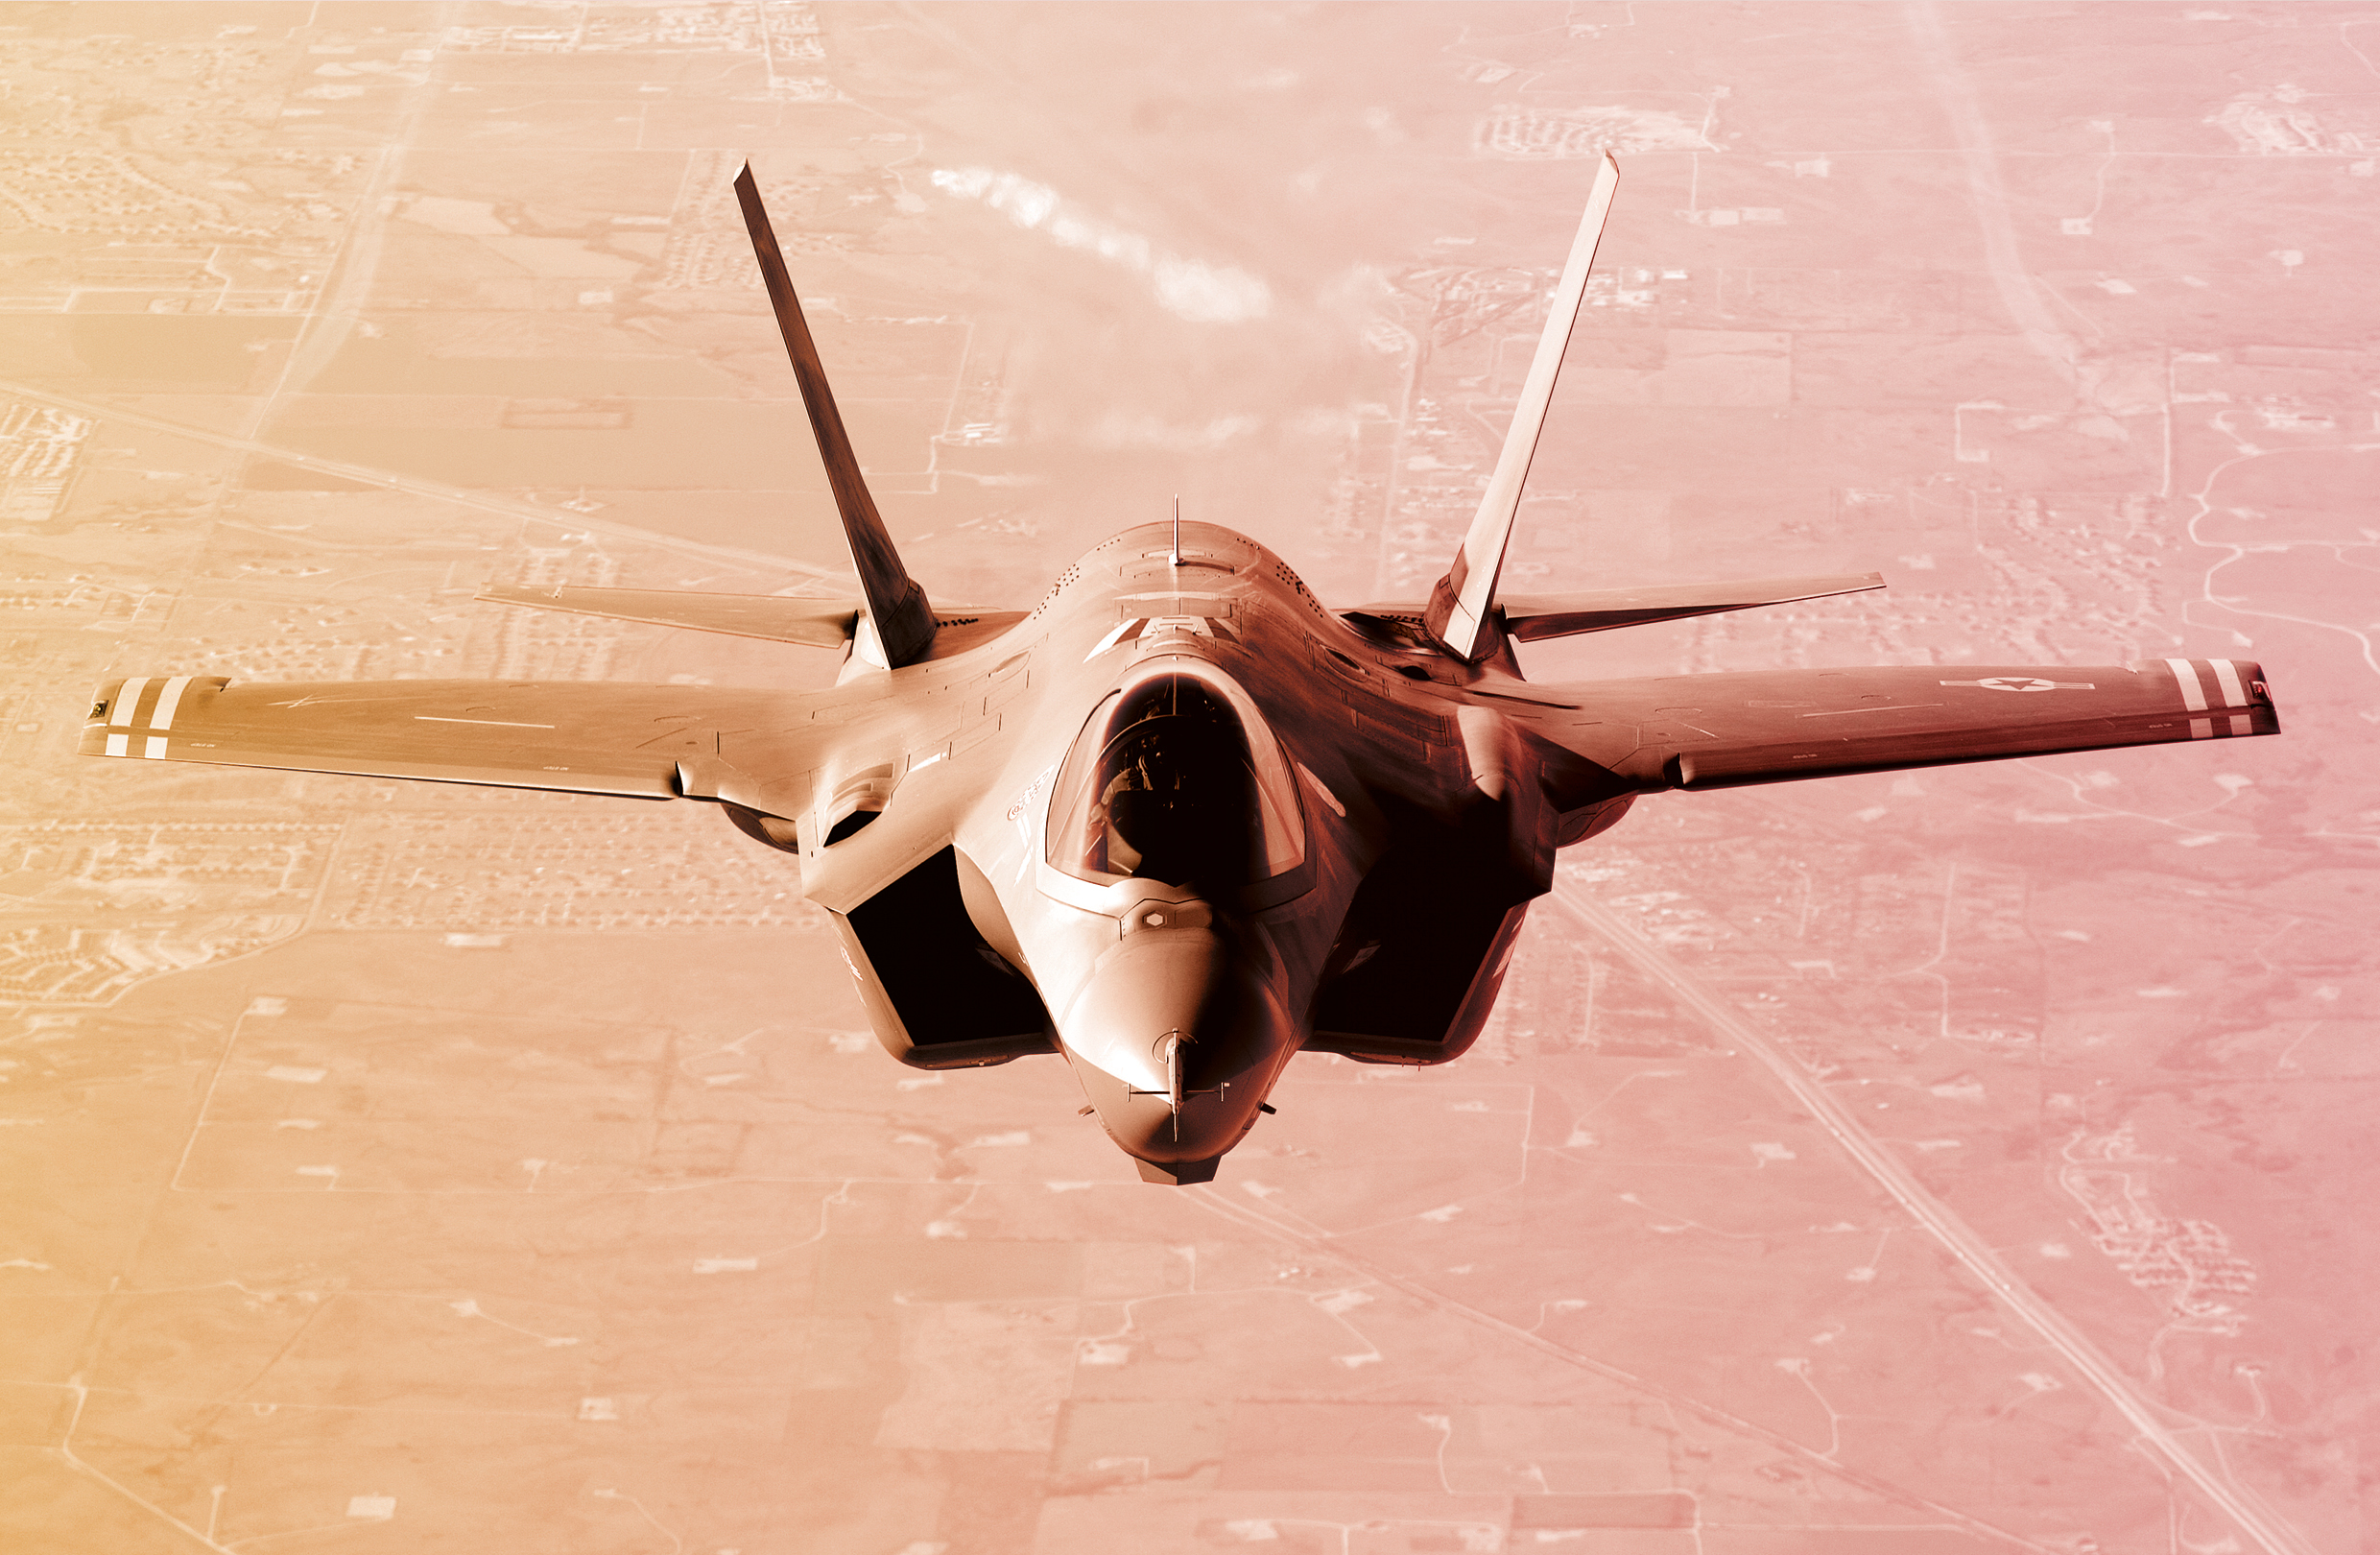 Fighter jet equipped with Li-ion batteries